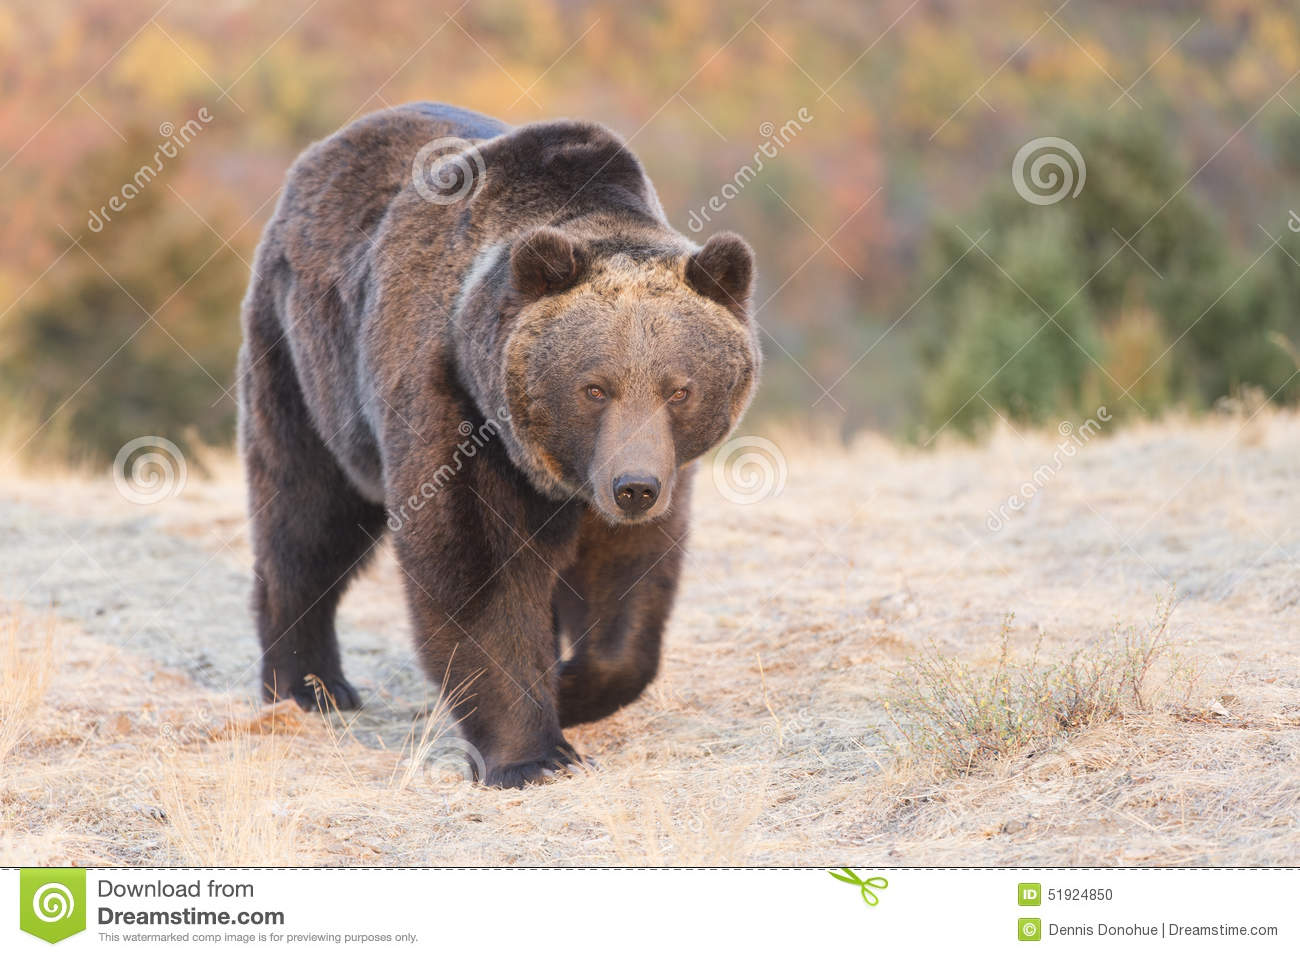 Grizzly bear walking - photo#22